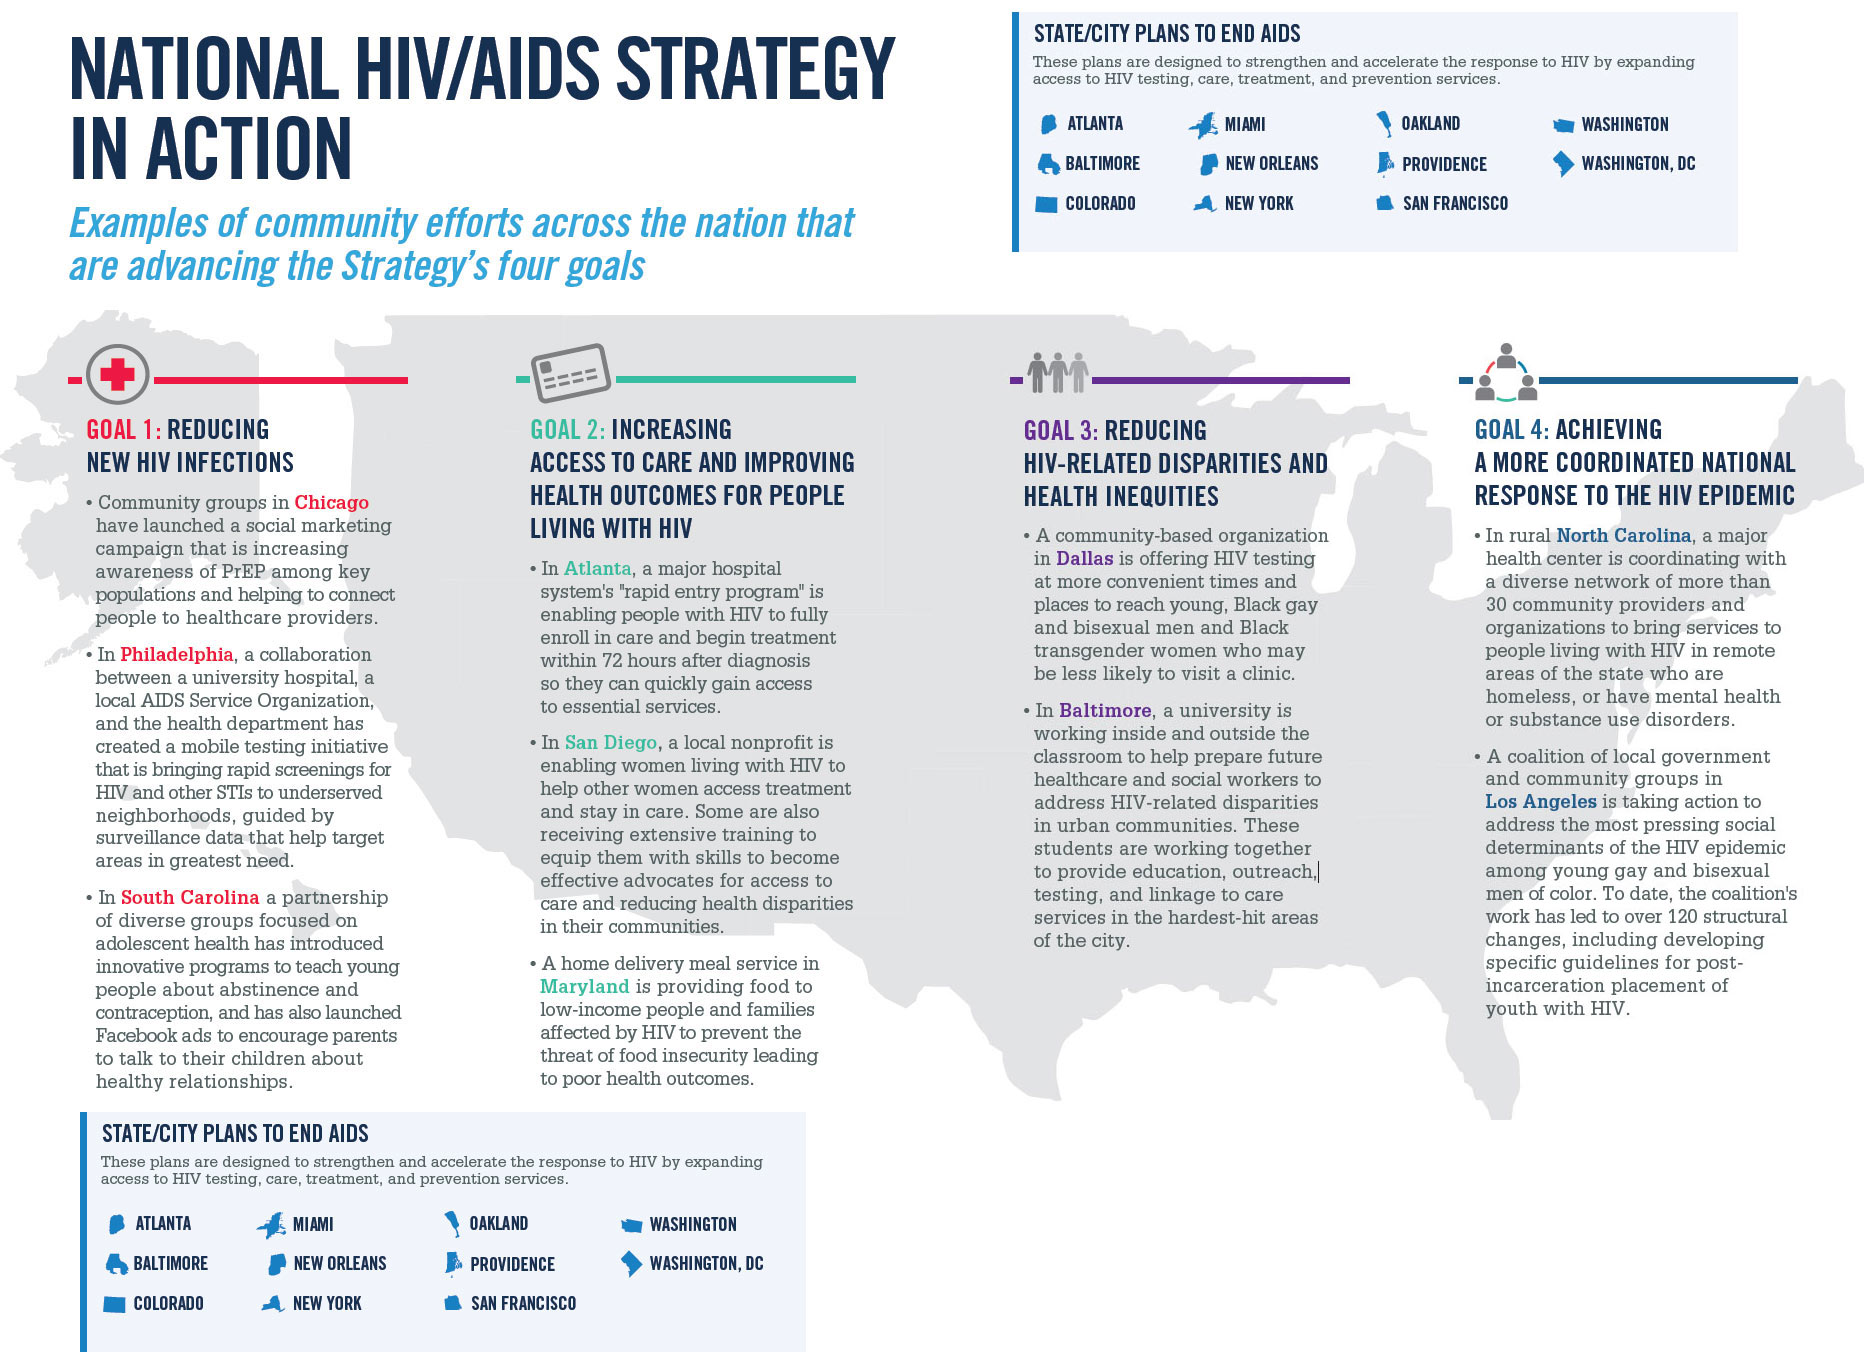 National HIV/AIDS Strategy in Action